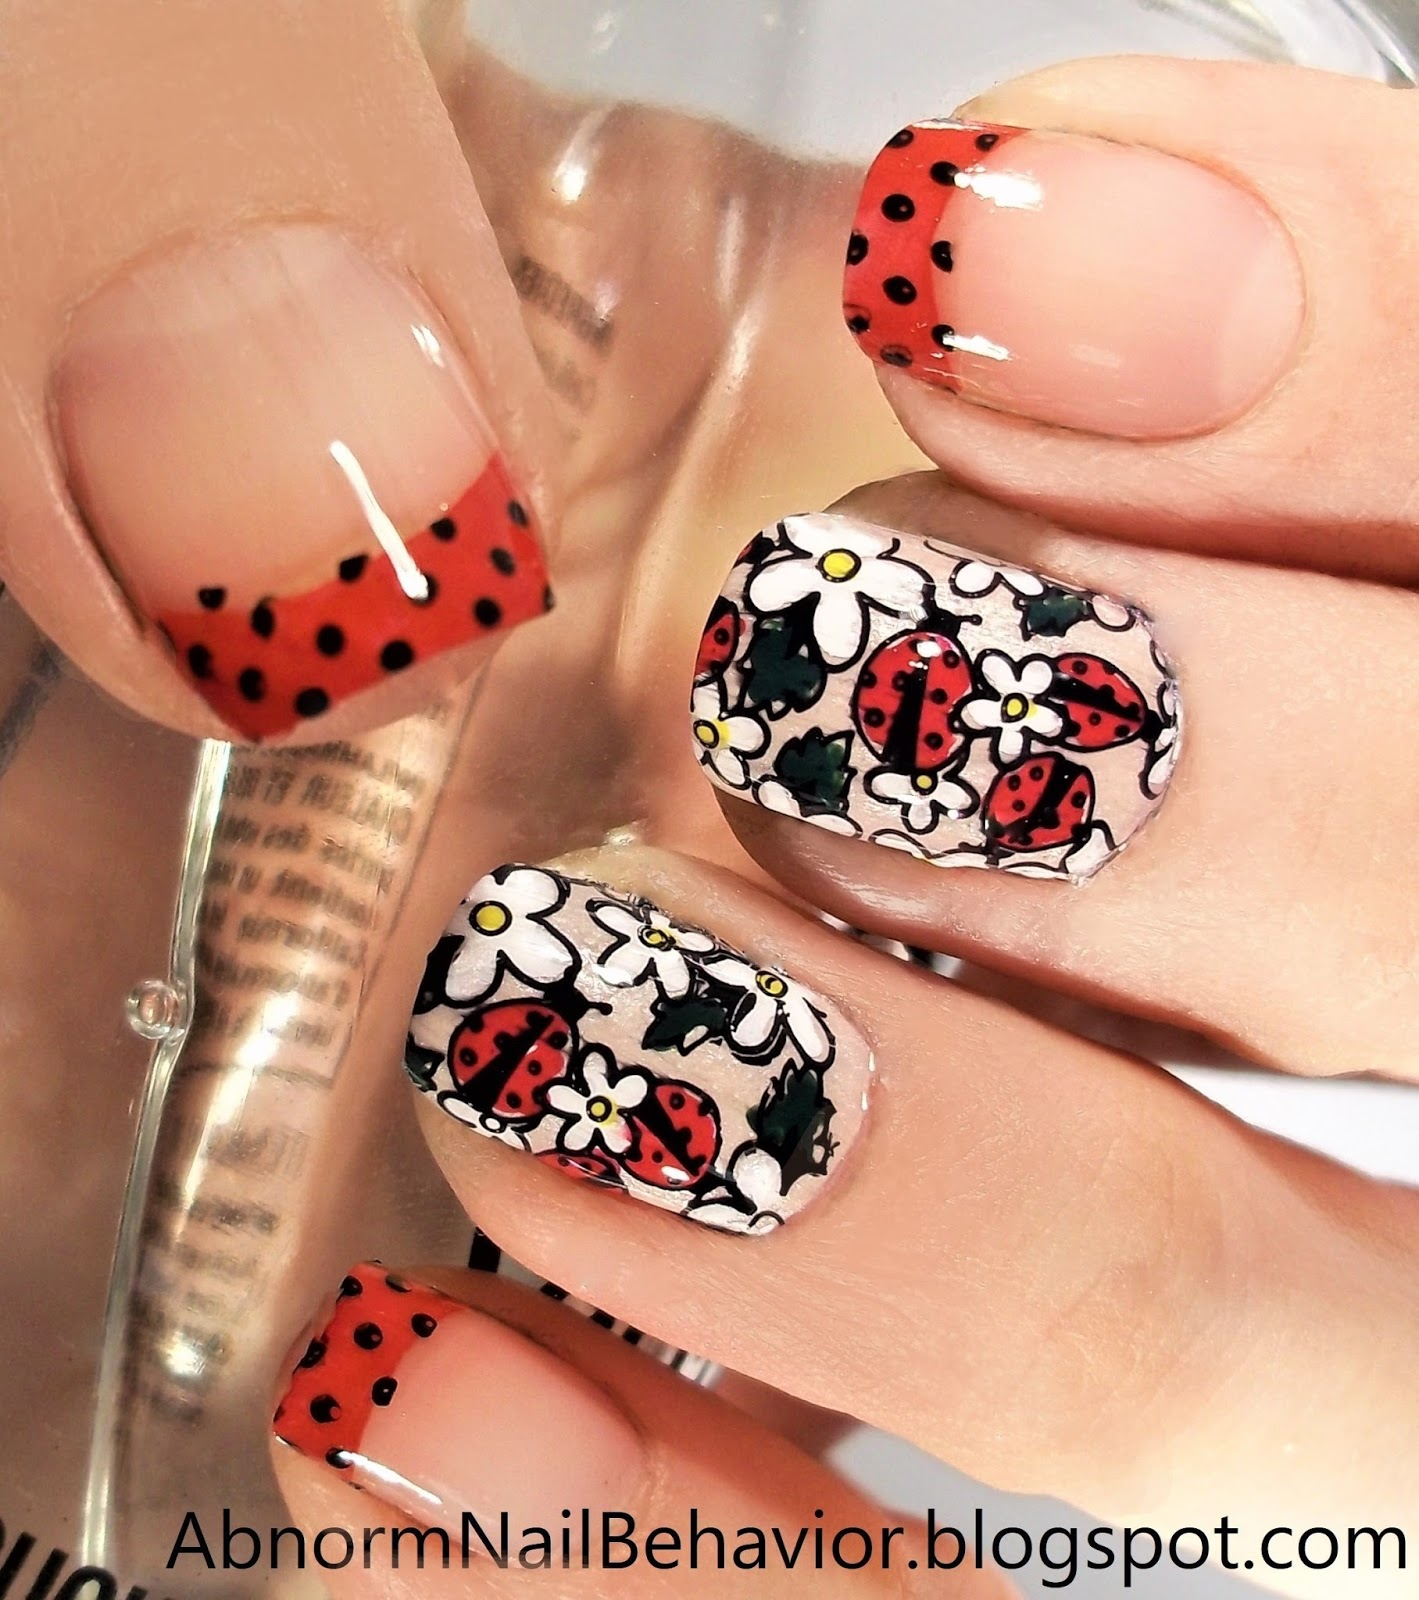 Abnorm Nail Behavior | Nail Art : Reverse Stamping: How to Make a ...